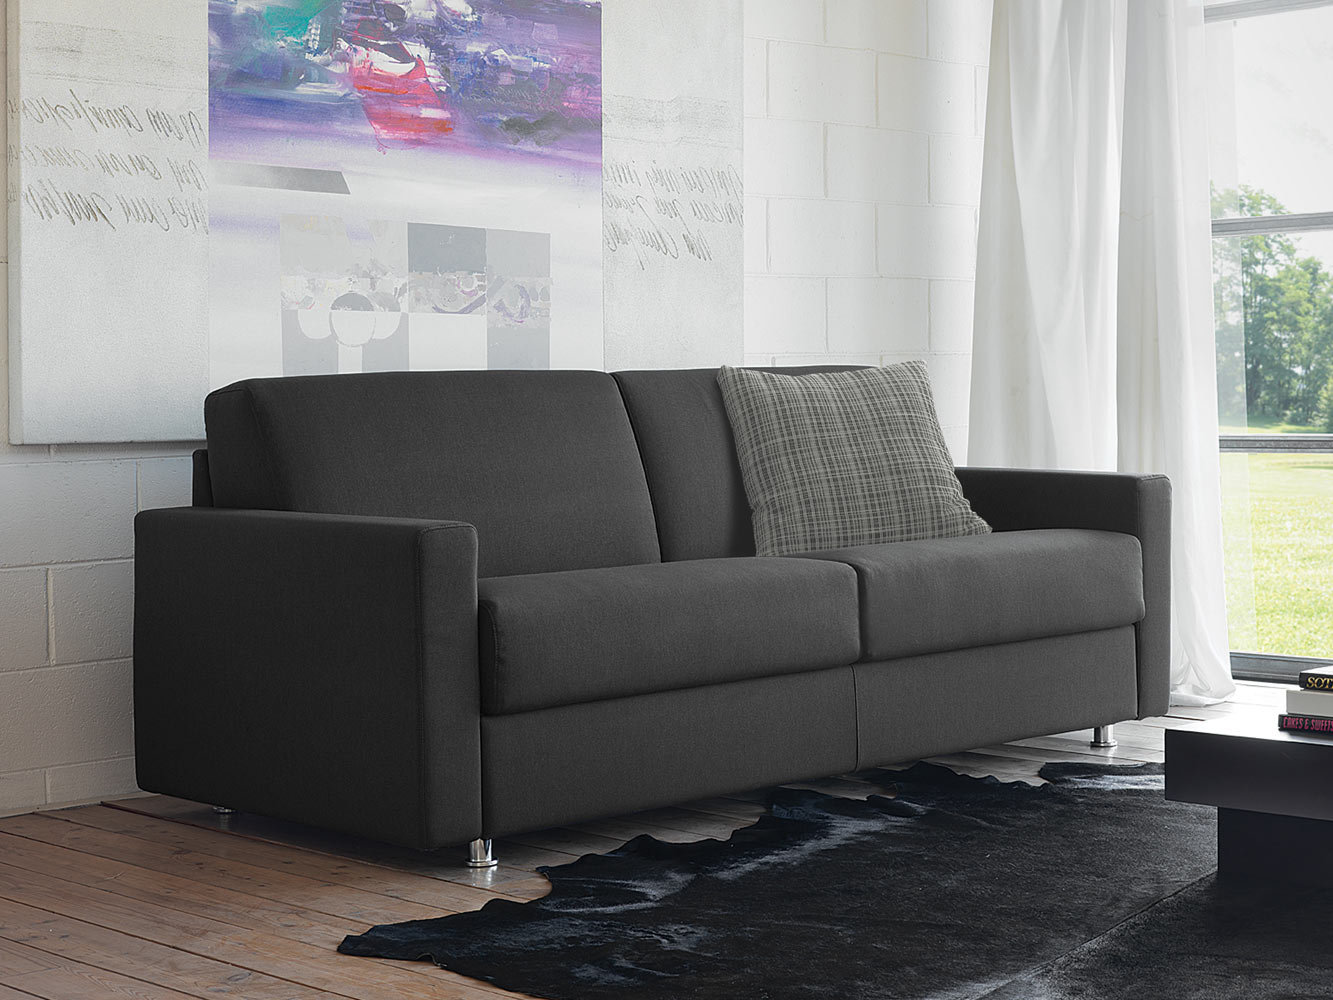 fabric sofa bed with removable cover lampo by milano. Black Bedroom Furniture Sets. Home Design Ideas